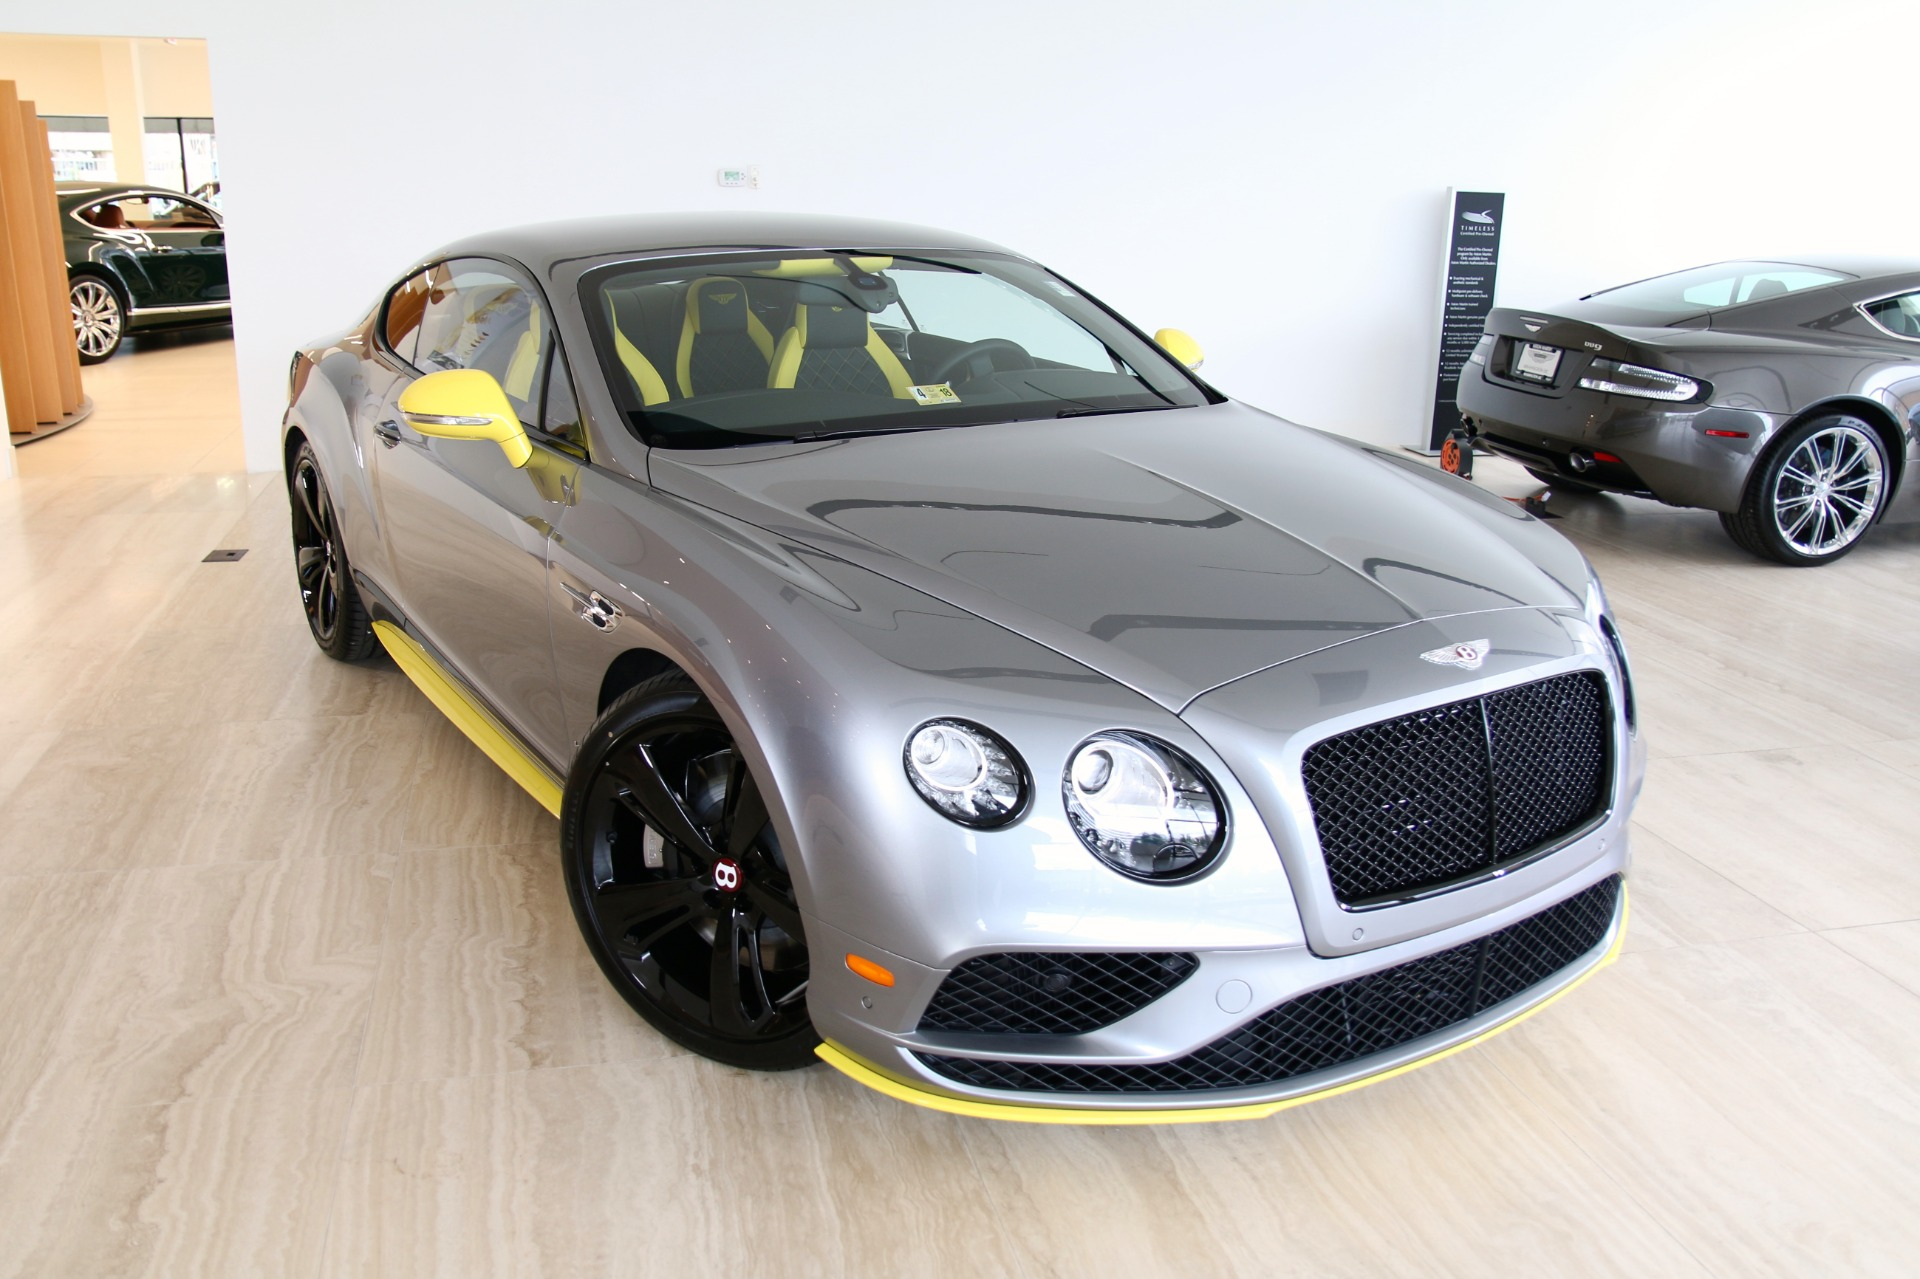 2017 bentley continental gt v8 s black edition stock 7nc063014 for sale near vienna va va. Black Bedroom Furniture Sets. Home Design Ideas